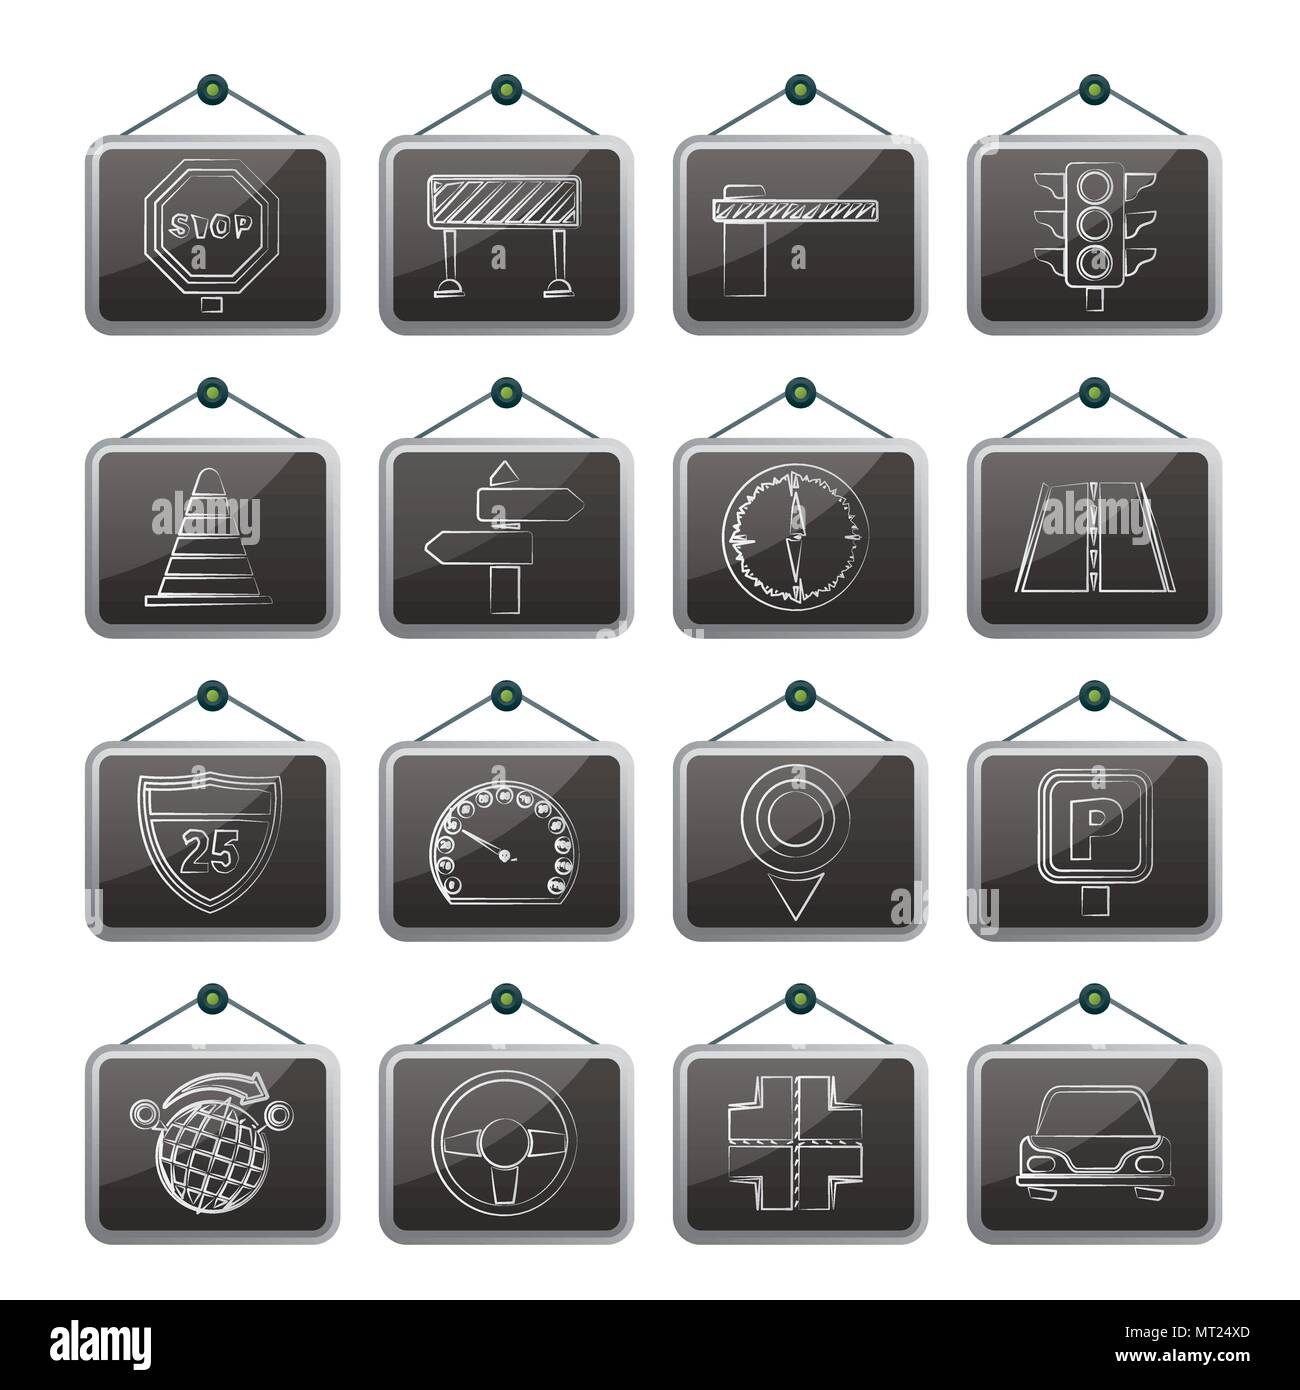 Road and Traffic Icons - vector icon set - Stock Image